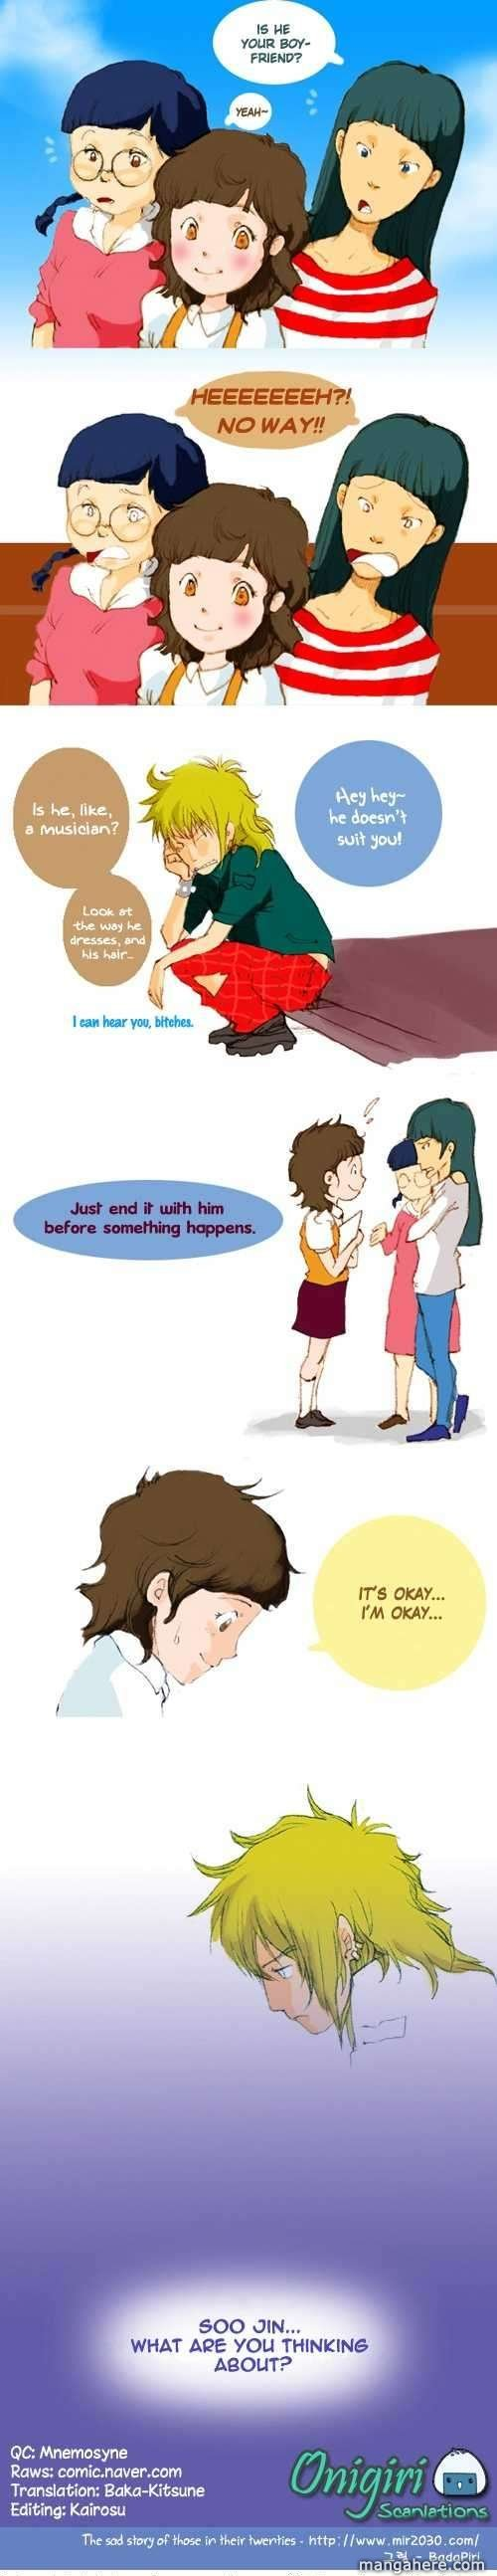 Because I Love You (Mir2030s) 1 Page 3